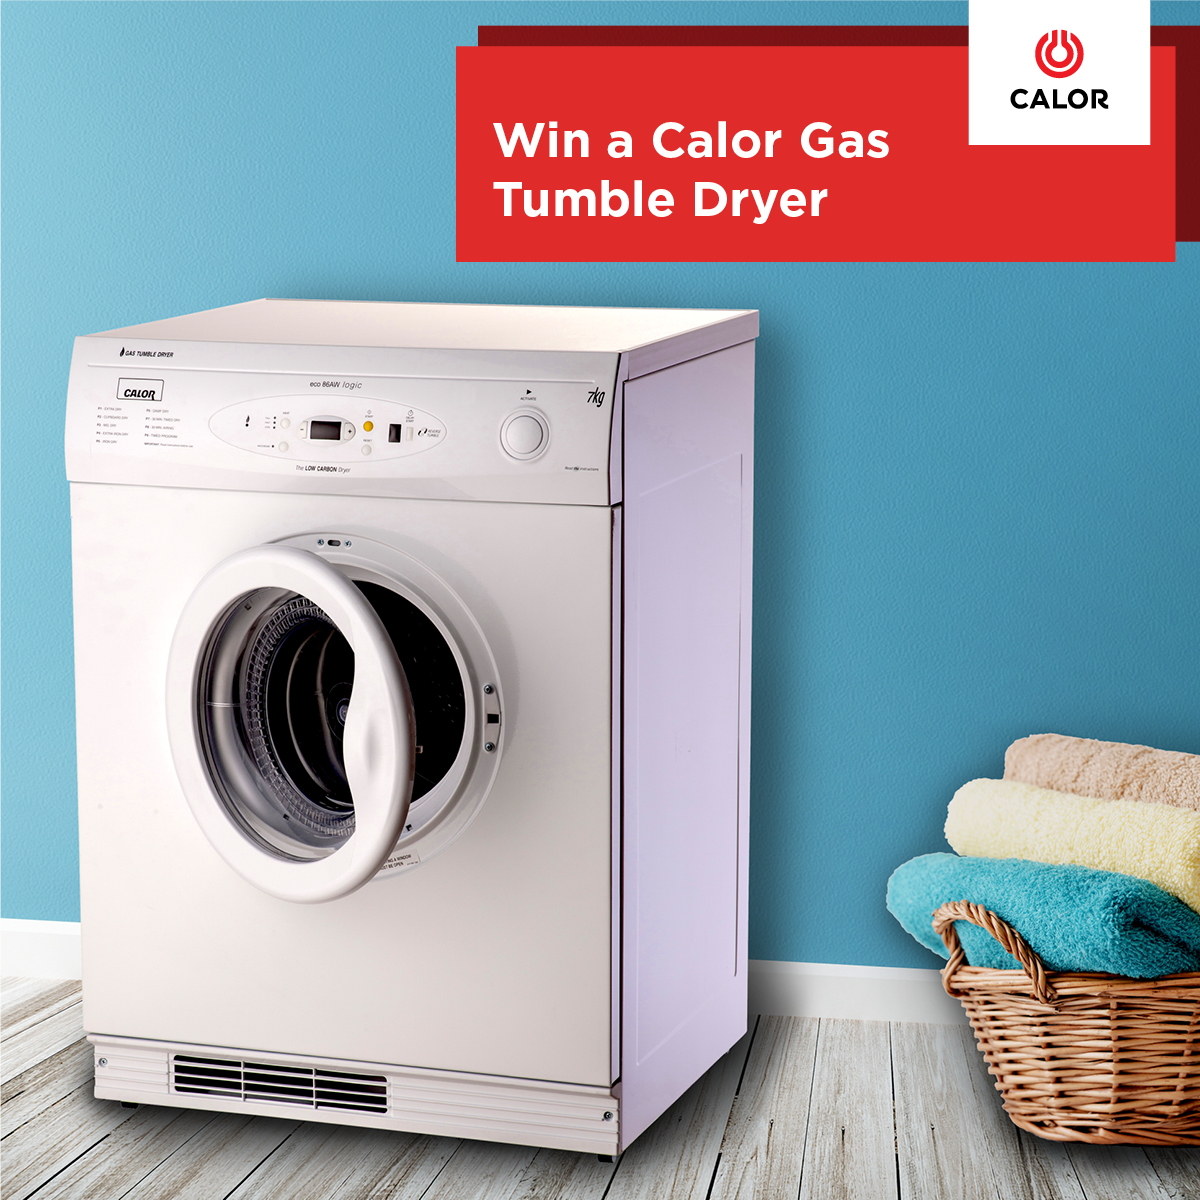 Tumble Dryer Giveaway FB Post